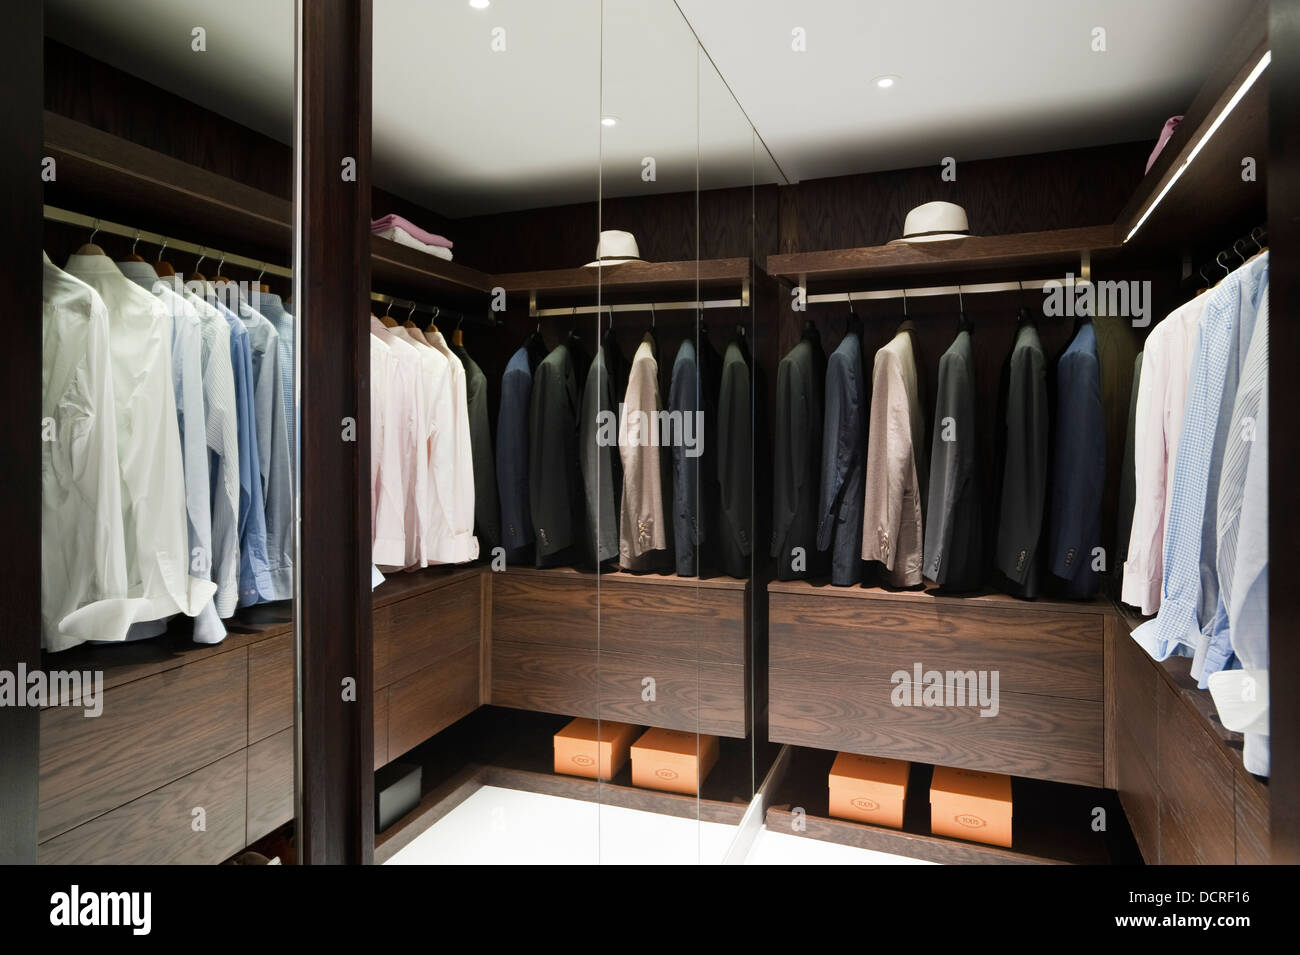 Mirrored dressing room of London city apartment - Stock Image